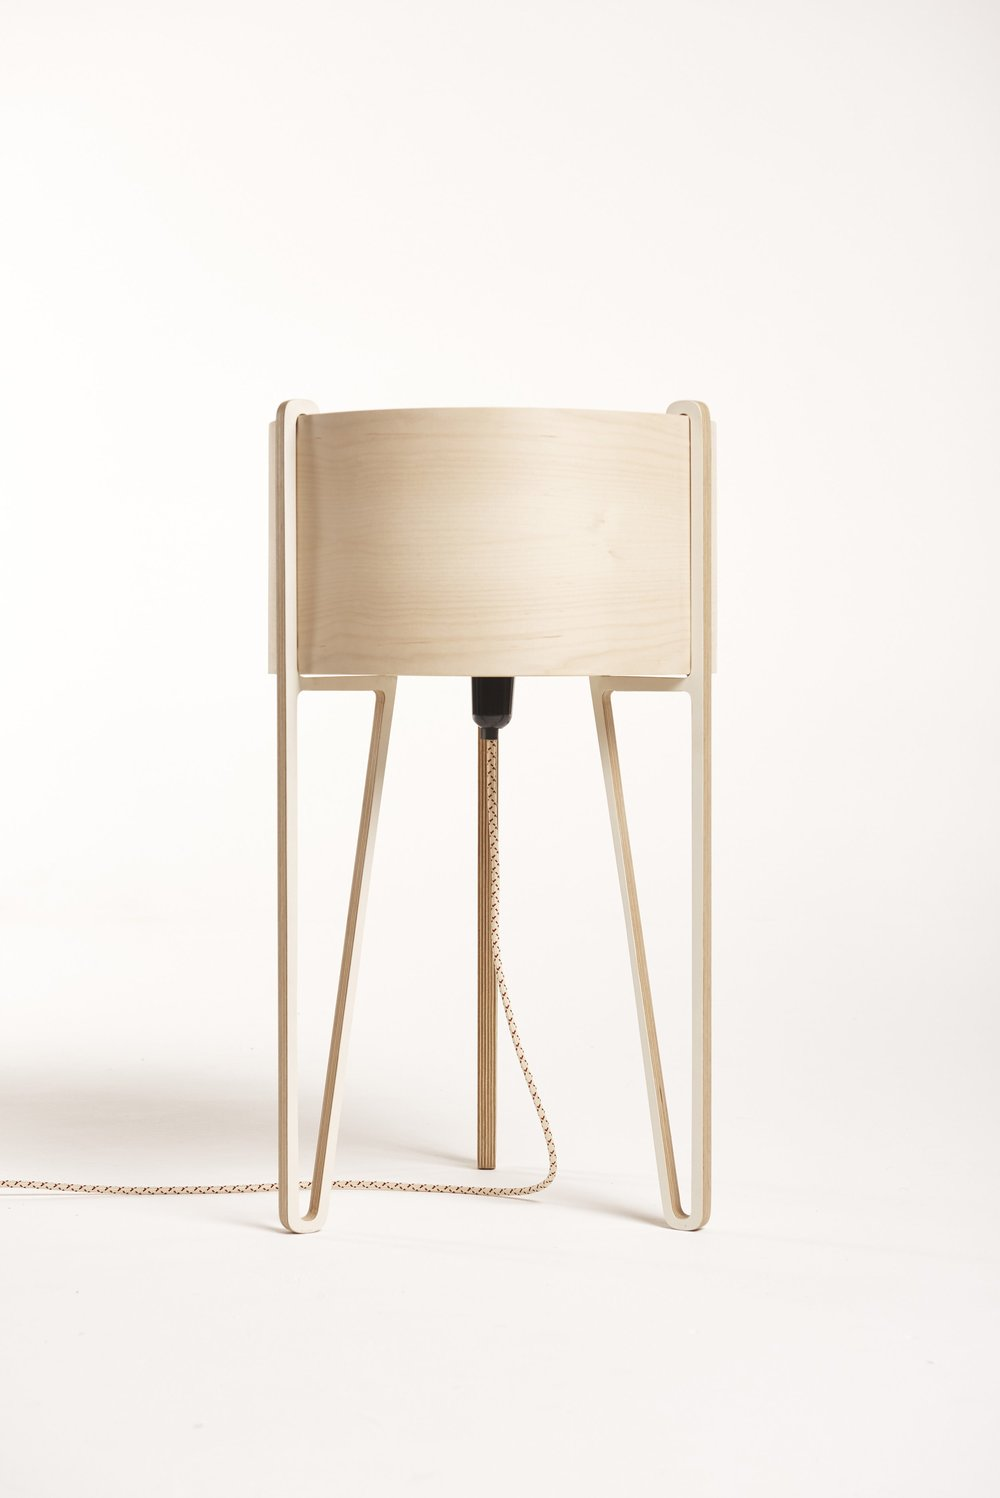 The sunset's sister design, a standing floor lamp now discontinued.